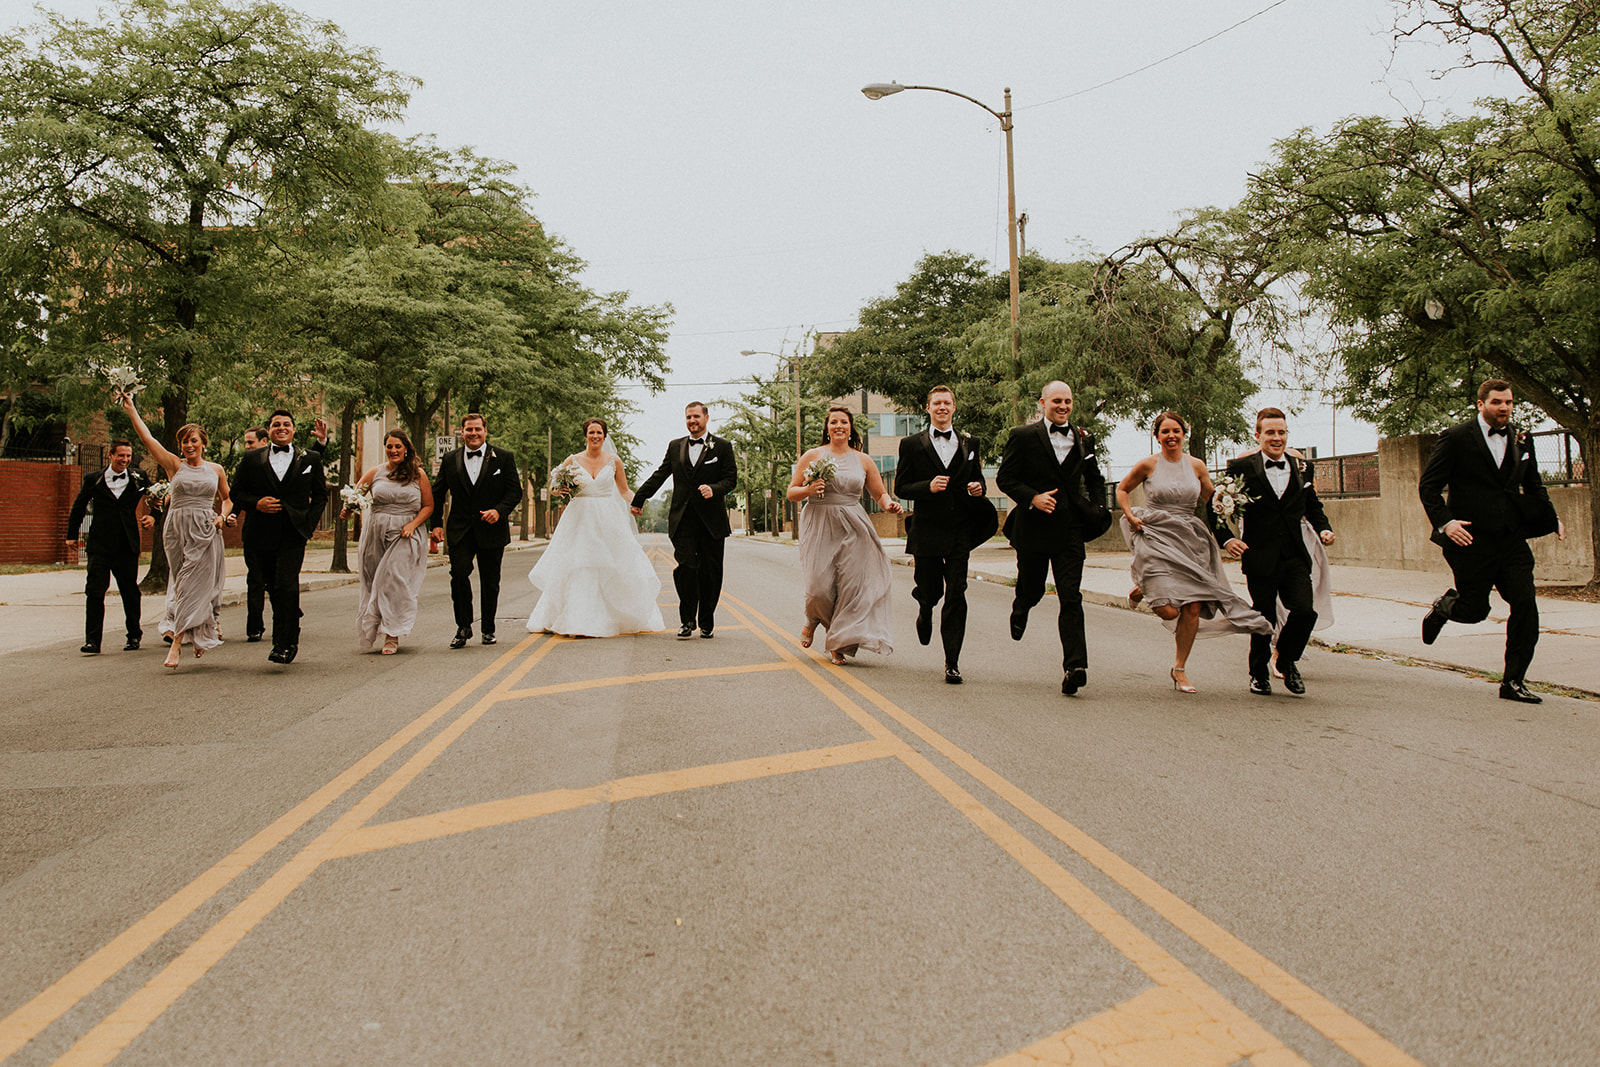 Amy + Dylan - When the wedding party is up for running down the streets of Toledo, they are people you want to party with!